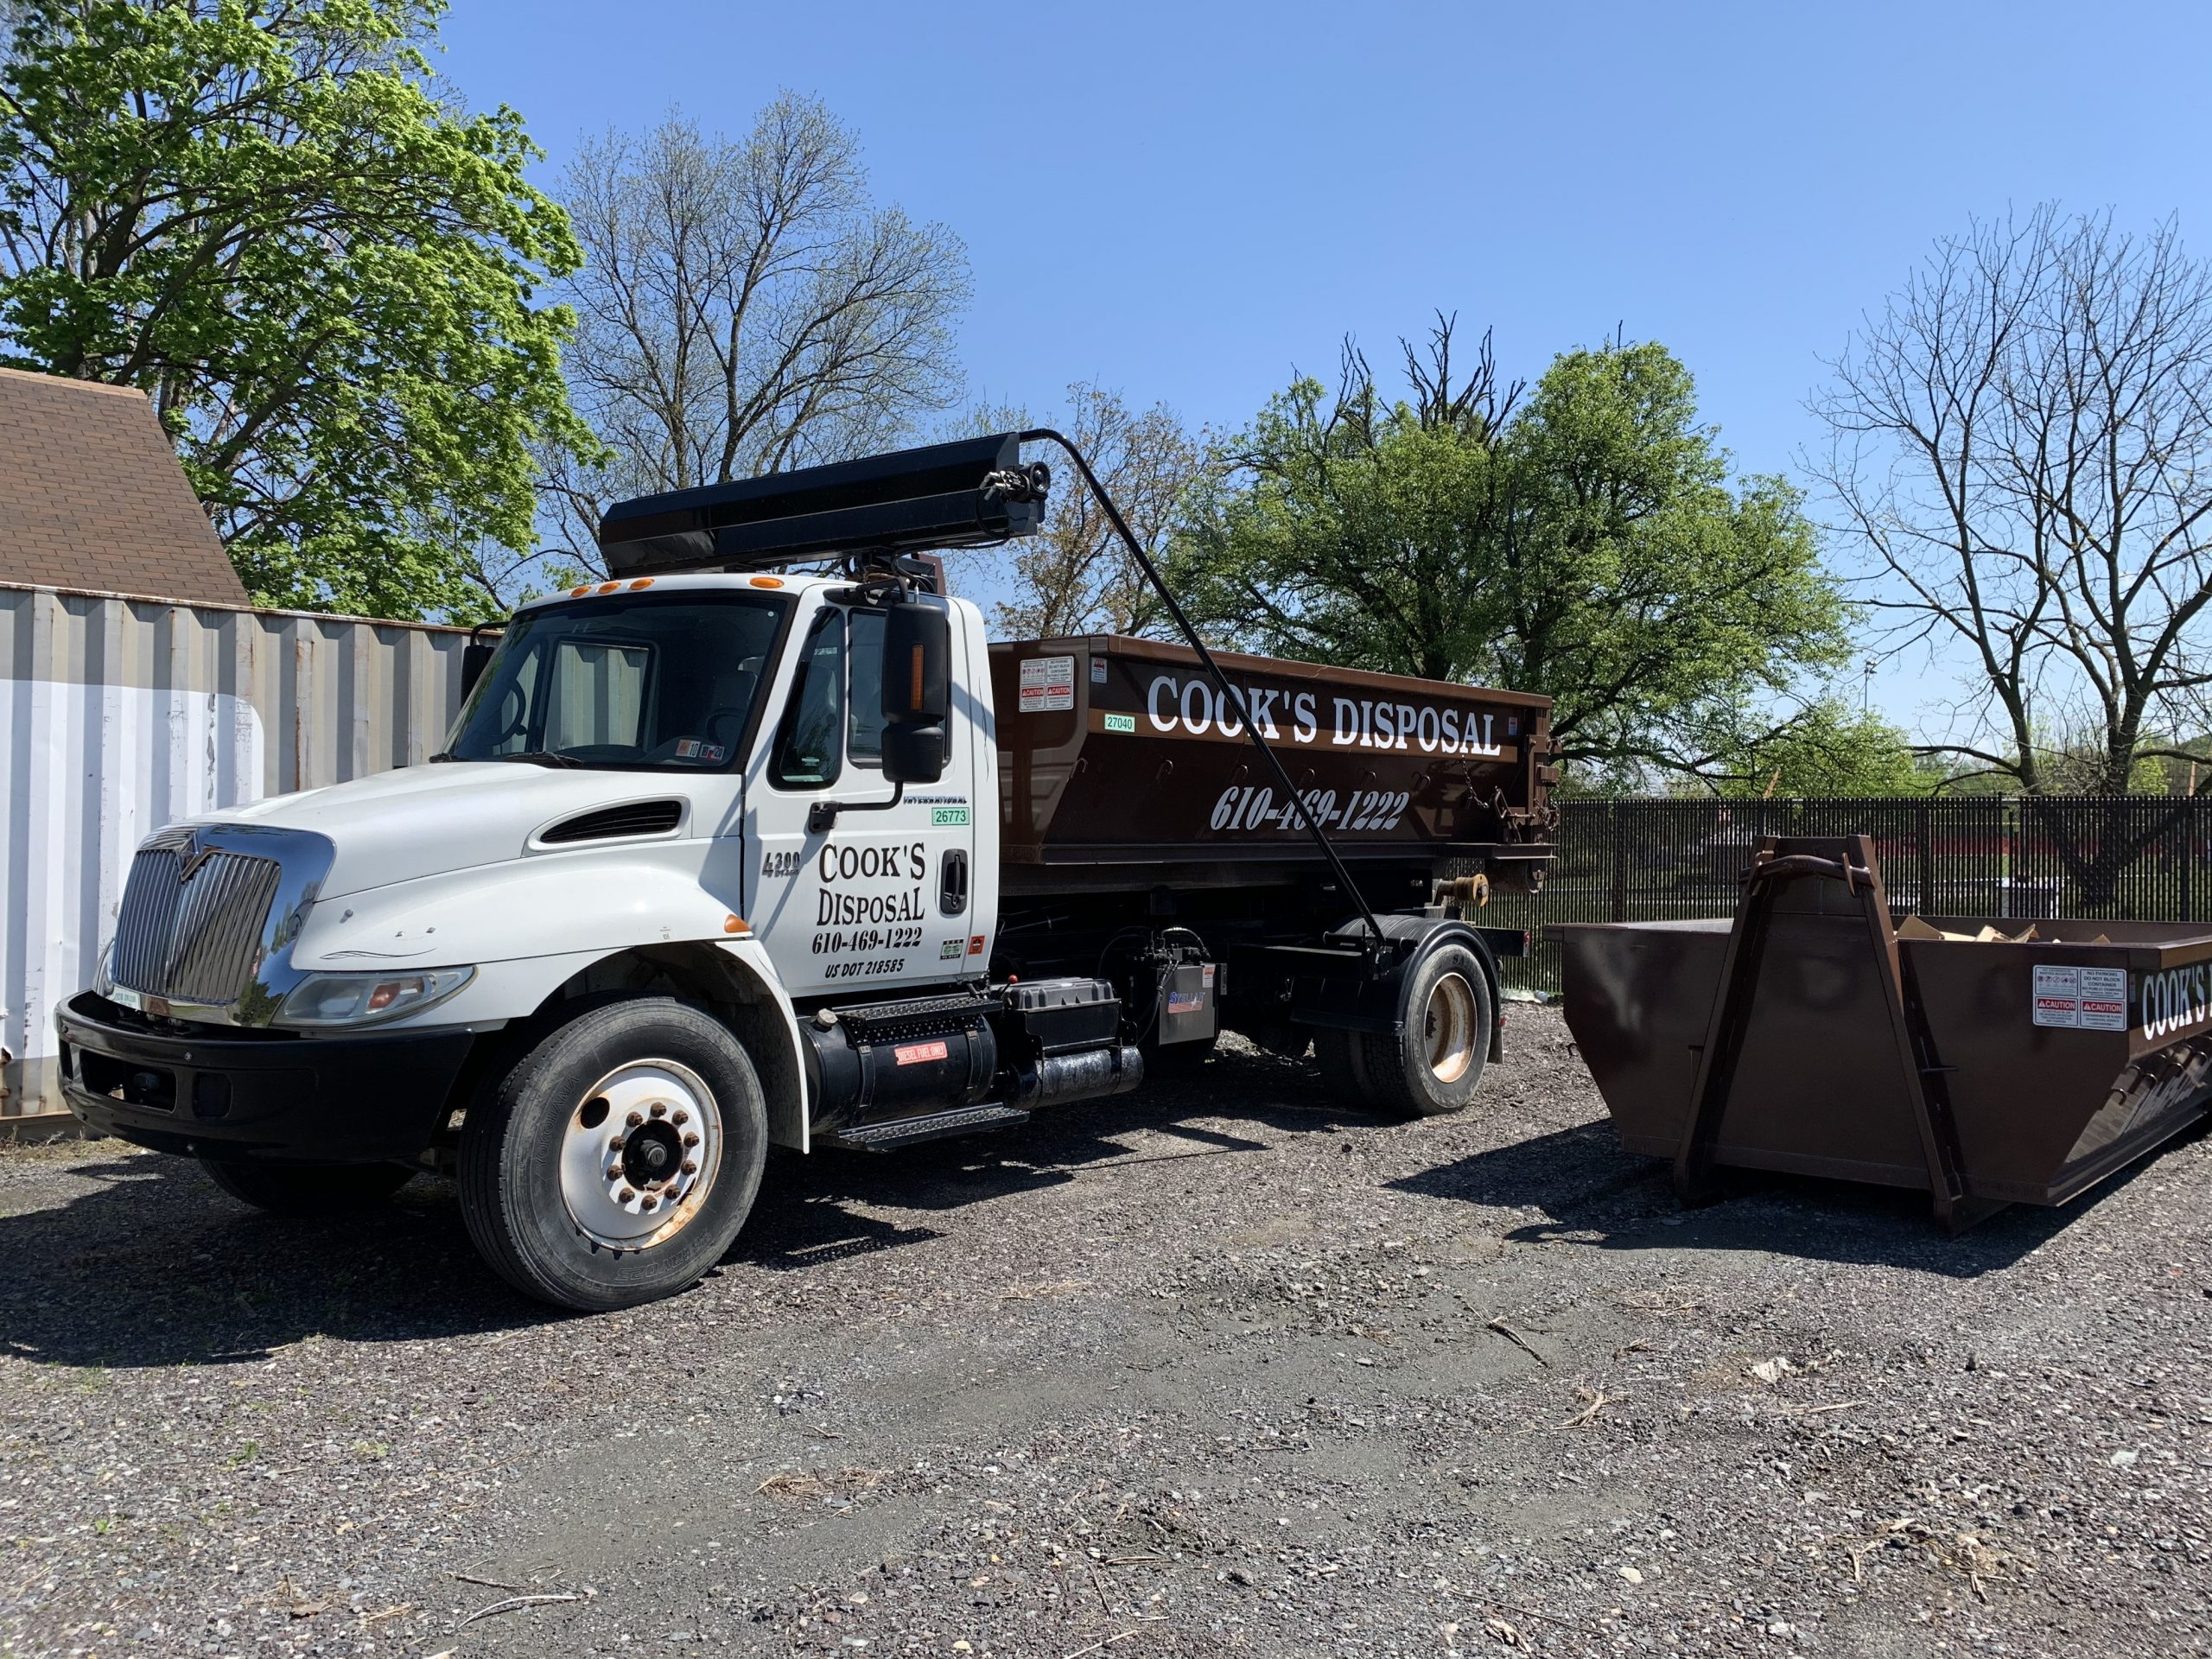 Dumpster Roll Off Container Rental in Pottstown PA